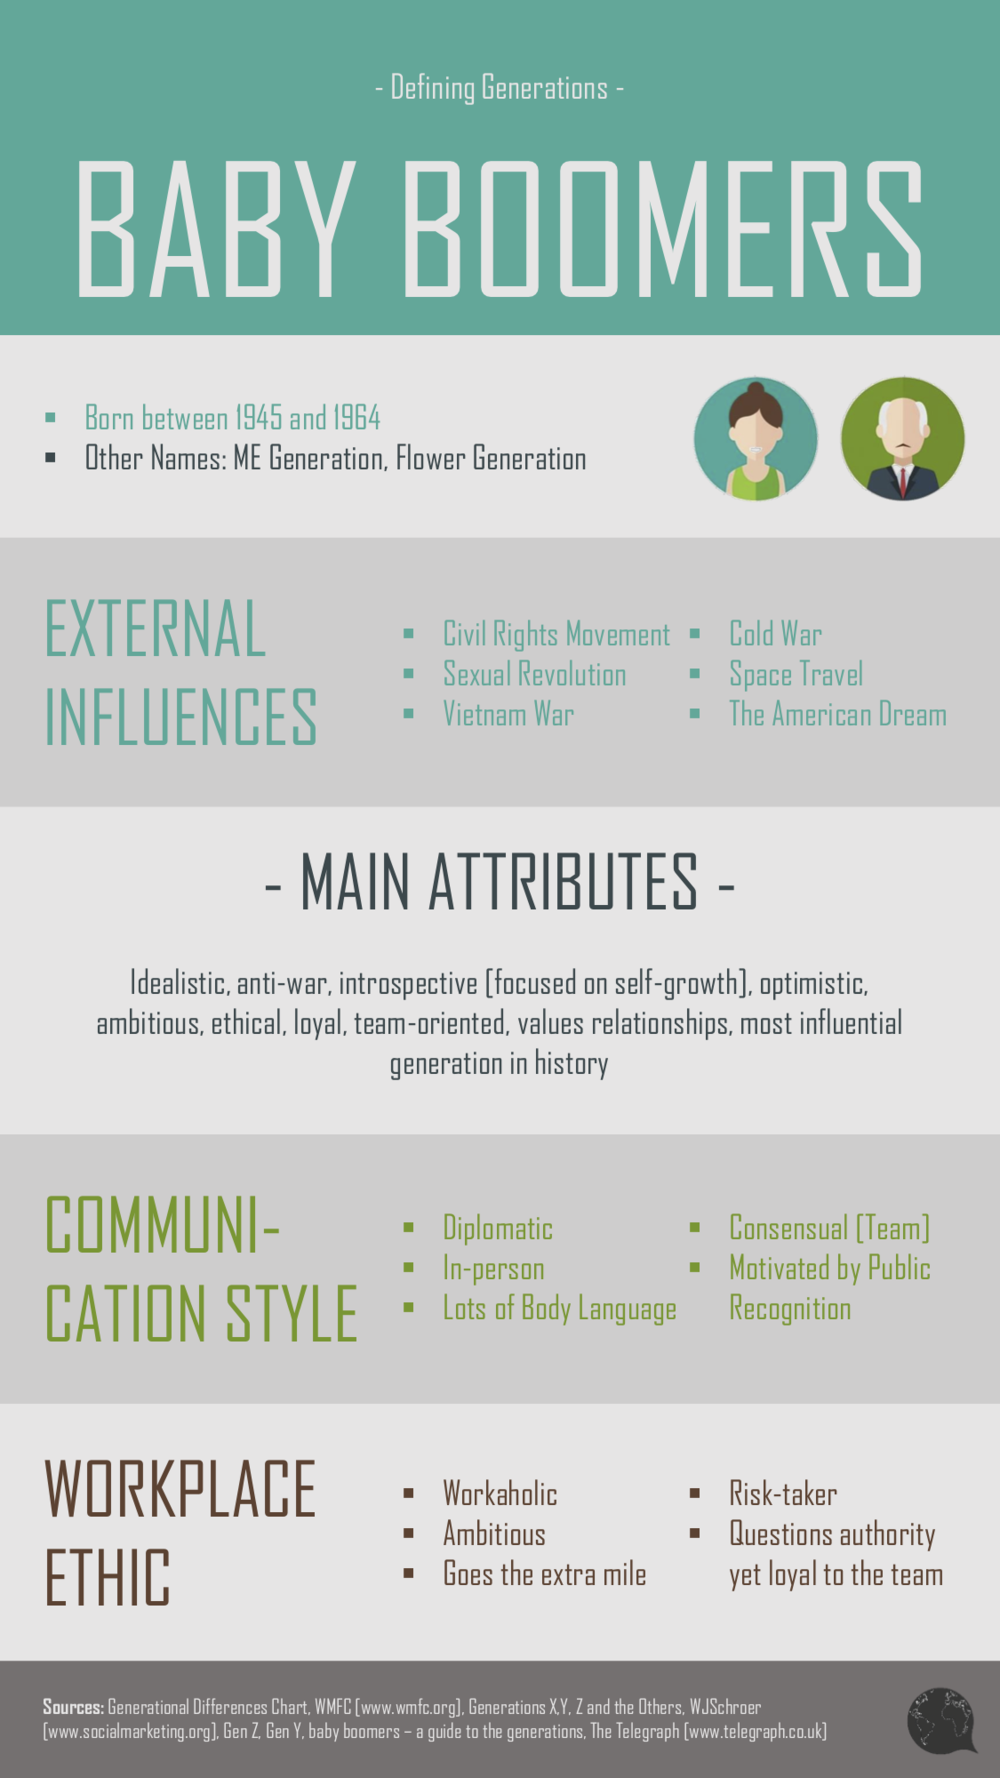 Defining Generations Infographic - Baby Boomers.png